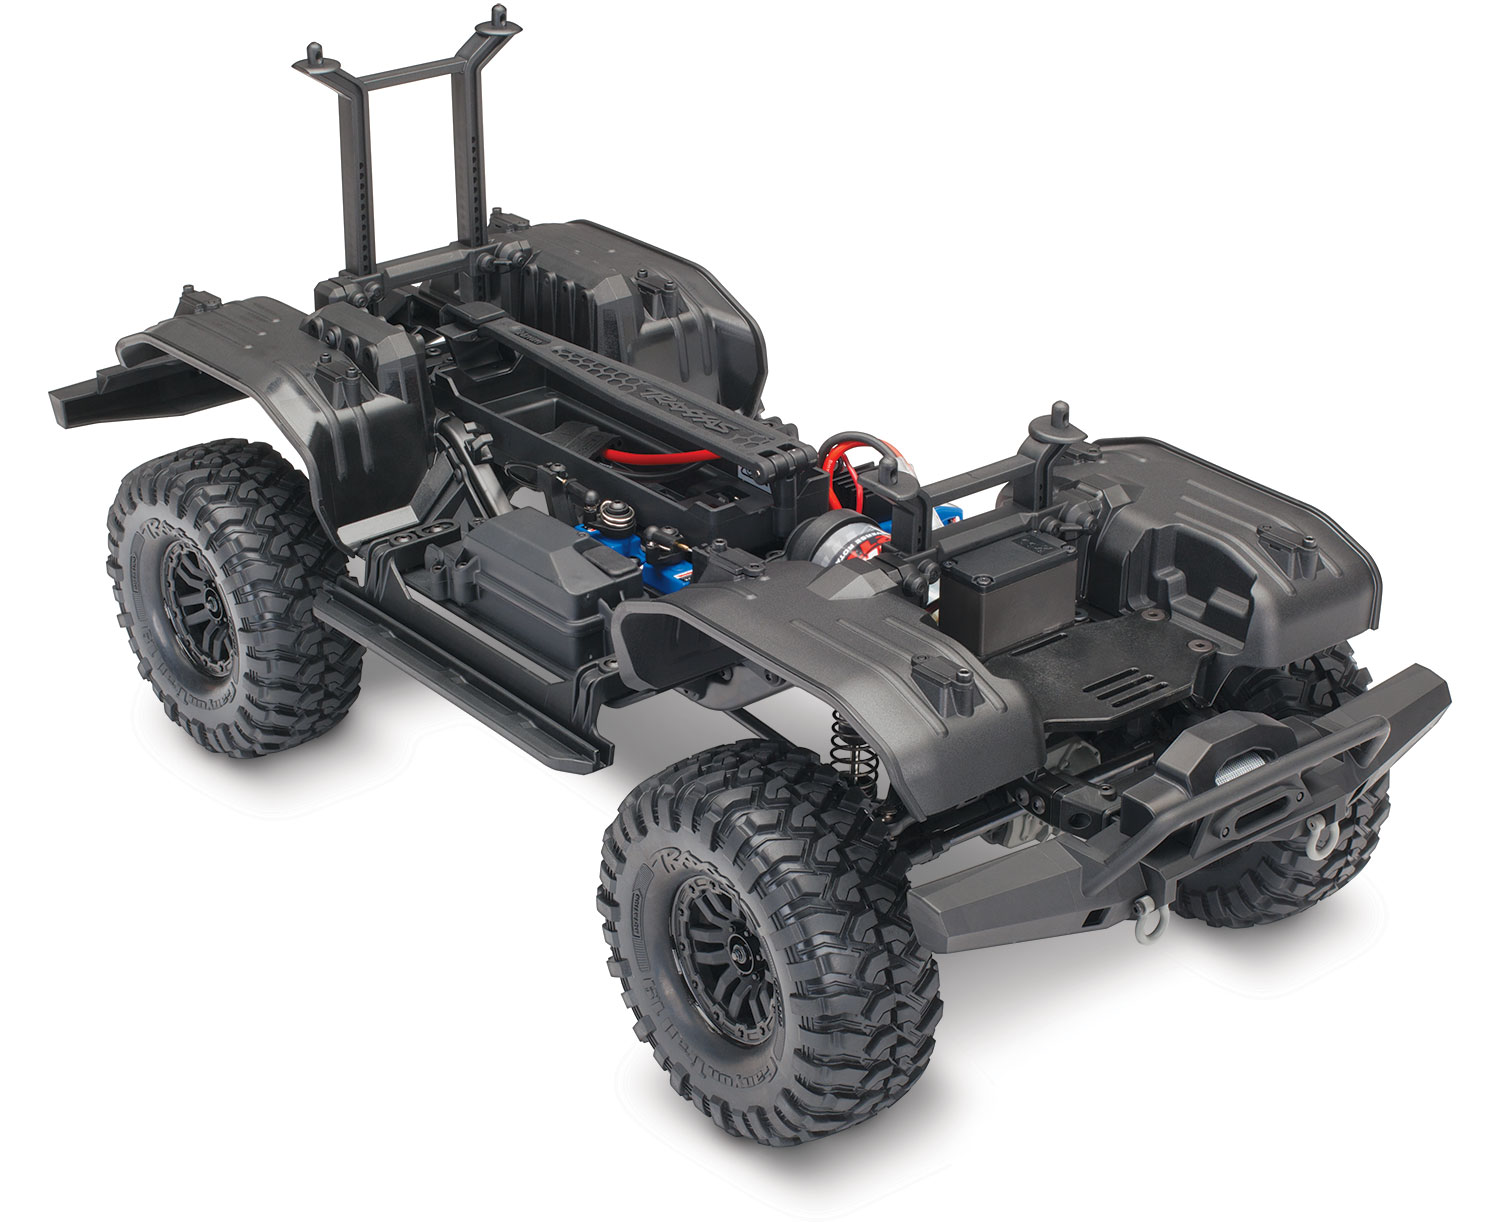 TRX-4 Crawler Kit (shown as assembled)